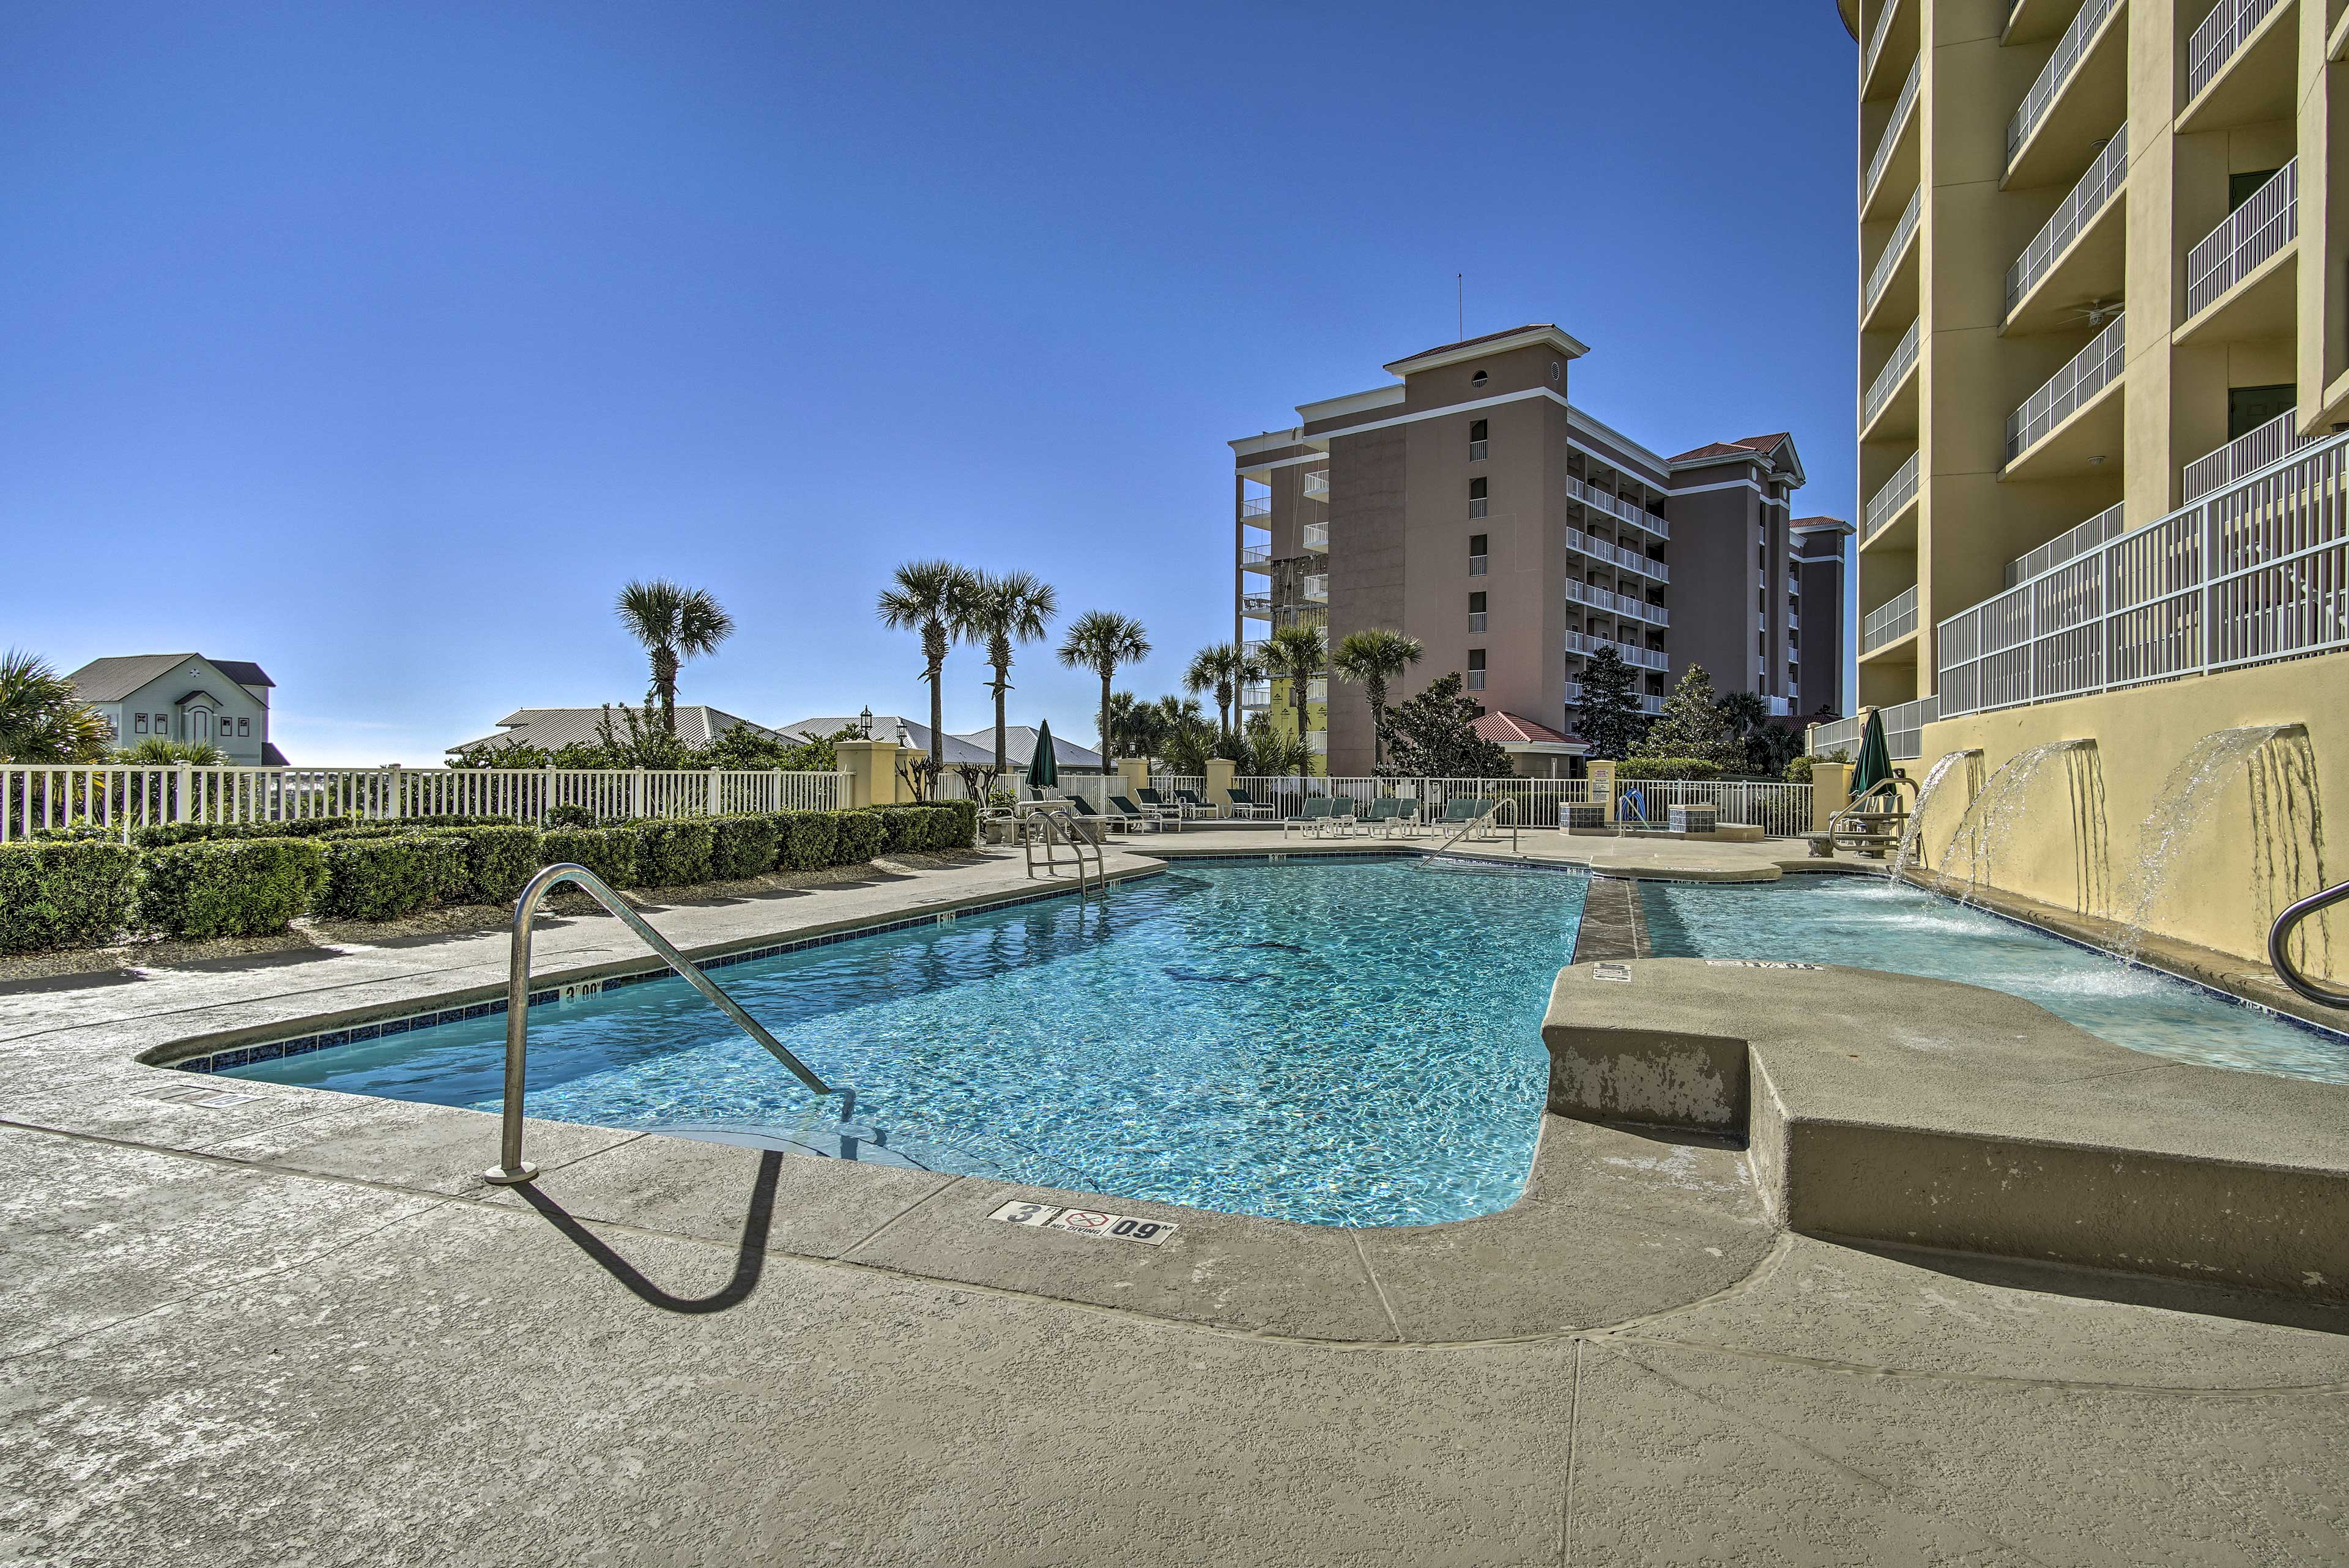 With top-notch community amenities, this Gulf Shores condo can't be beat!